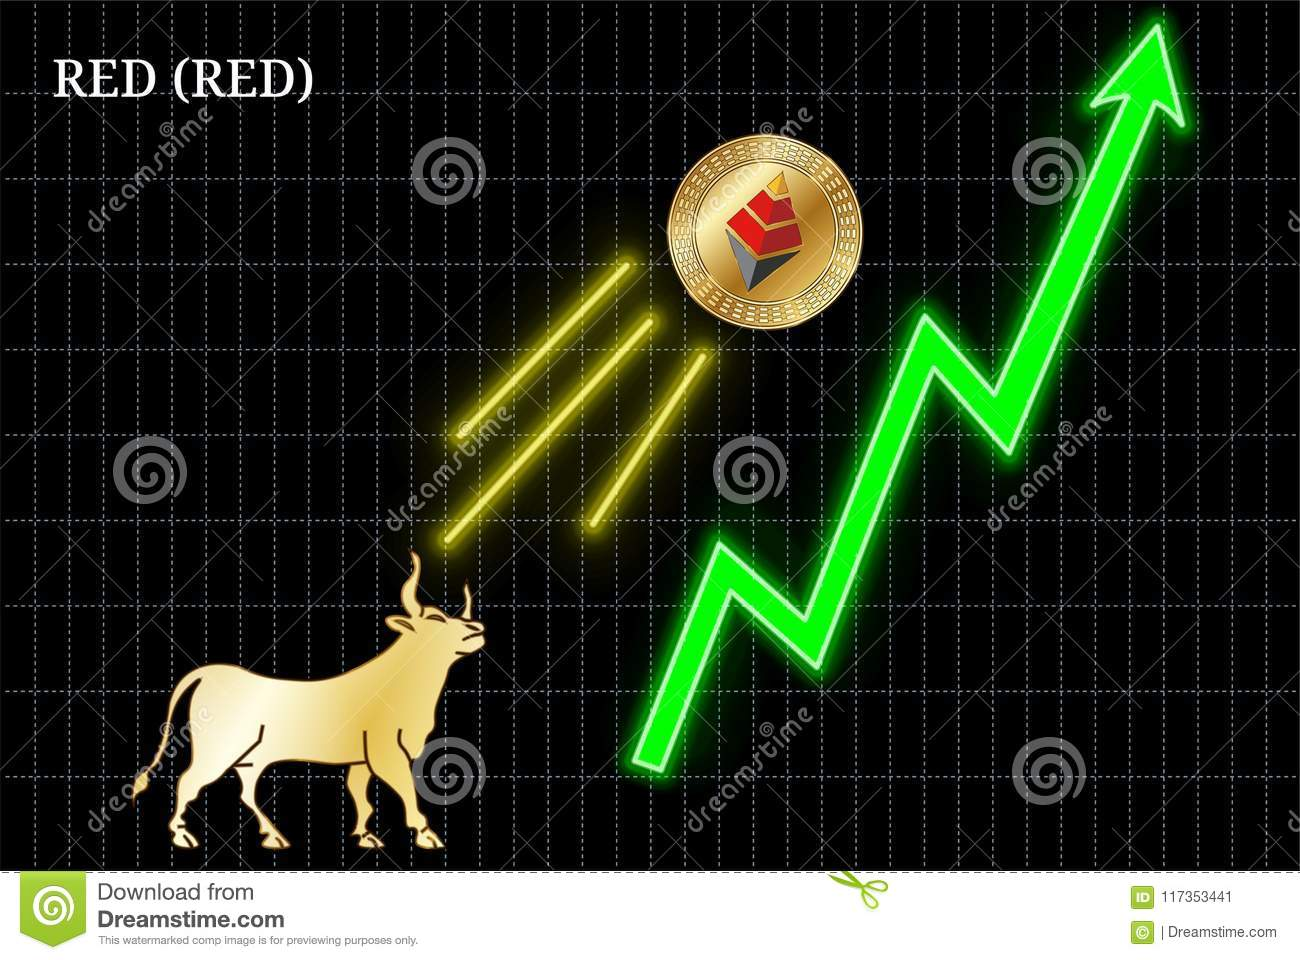 Bullish RED (RED) cryptocurrency chart